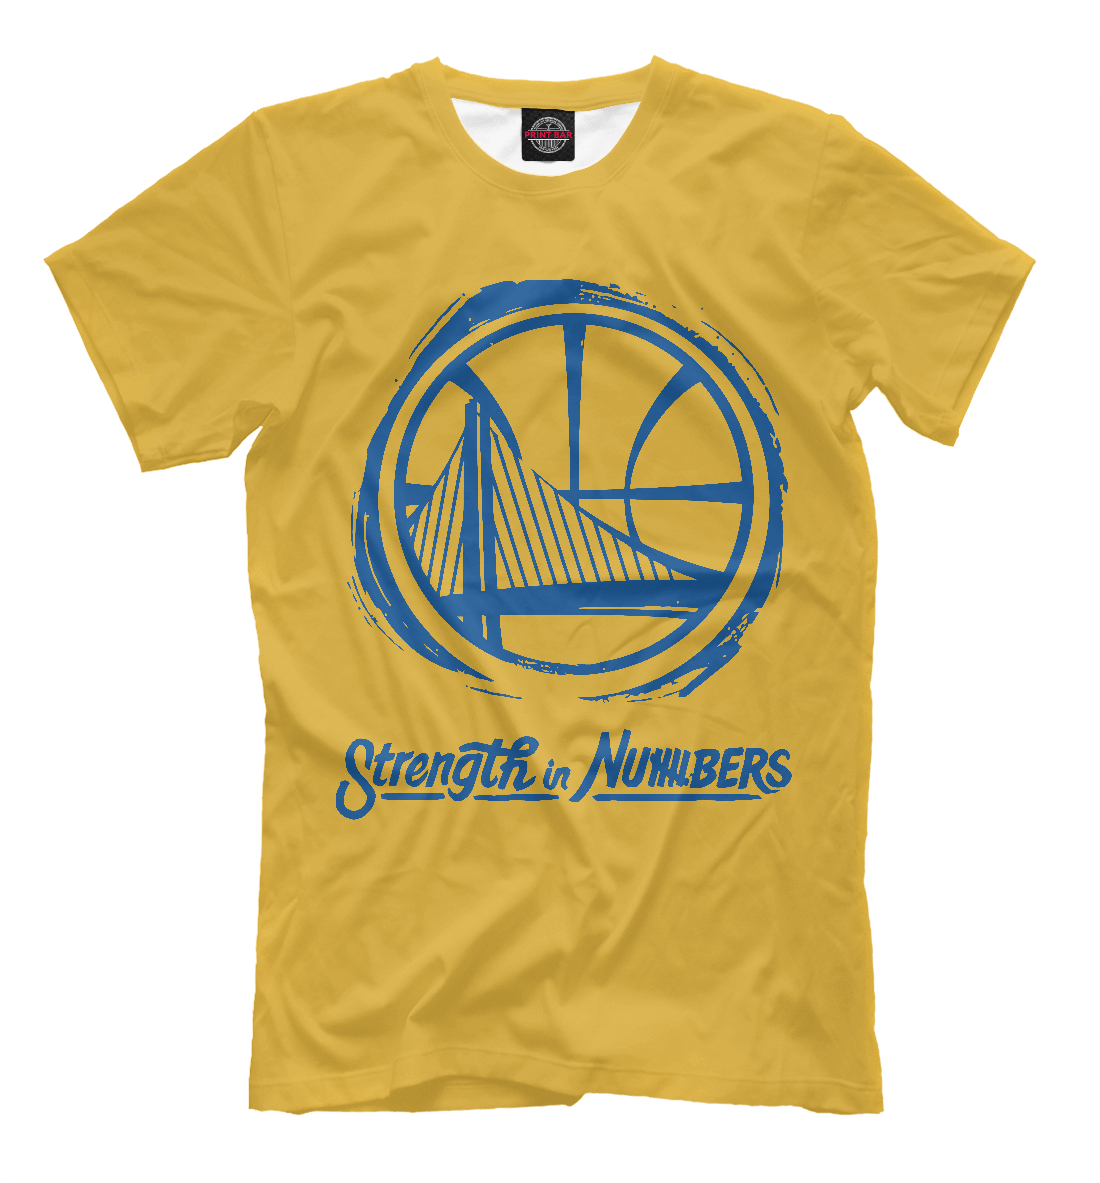 Купить Golden State Warriors, Printbar, Футболки, NBA-827353-fut-2